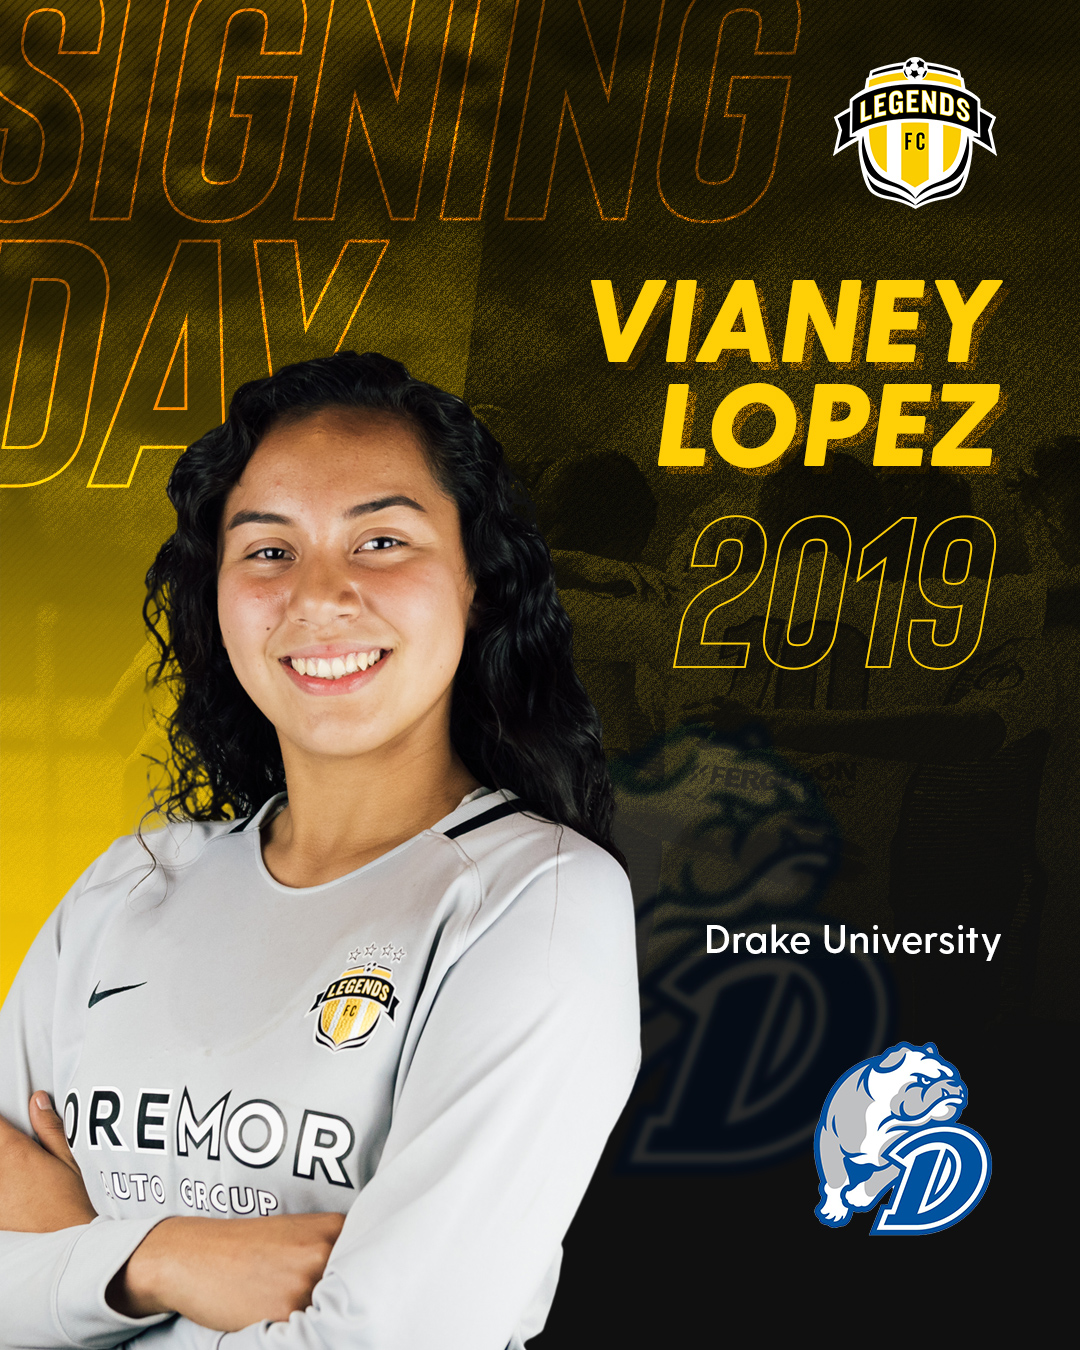 vianey-lopez.jpg